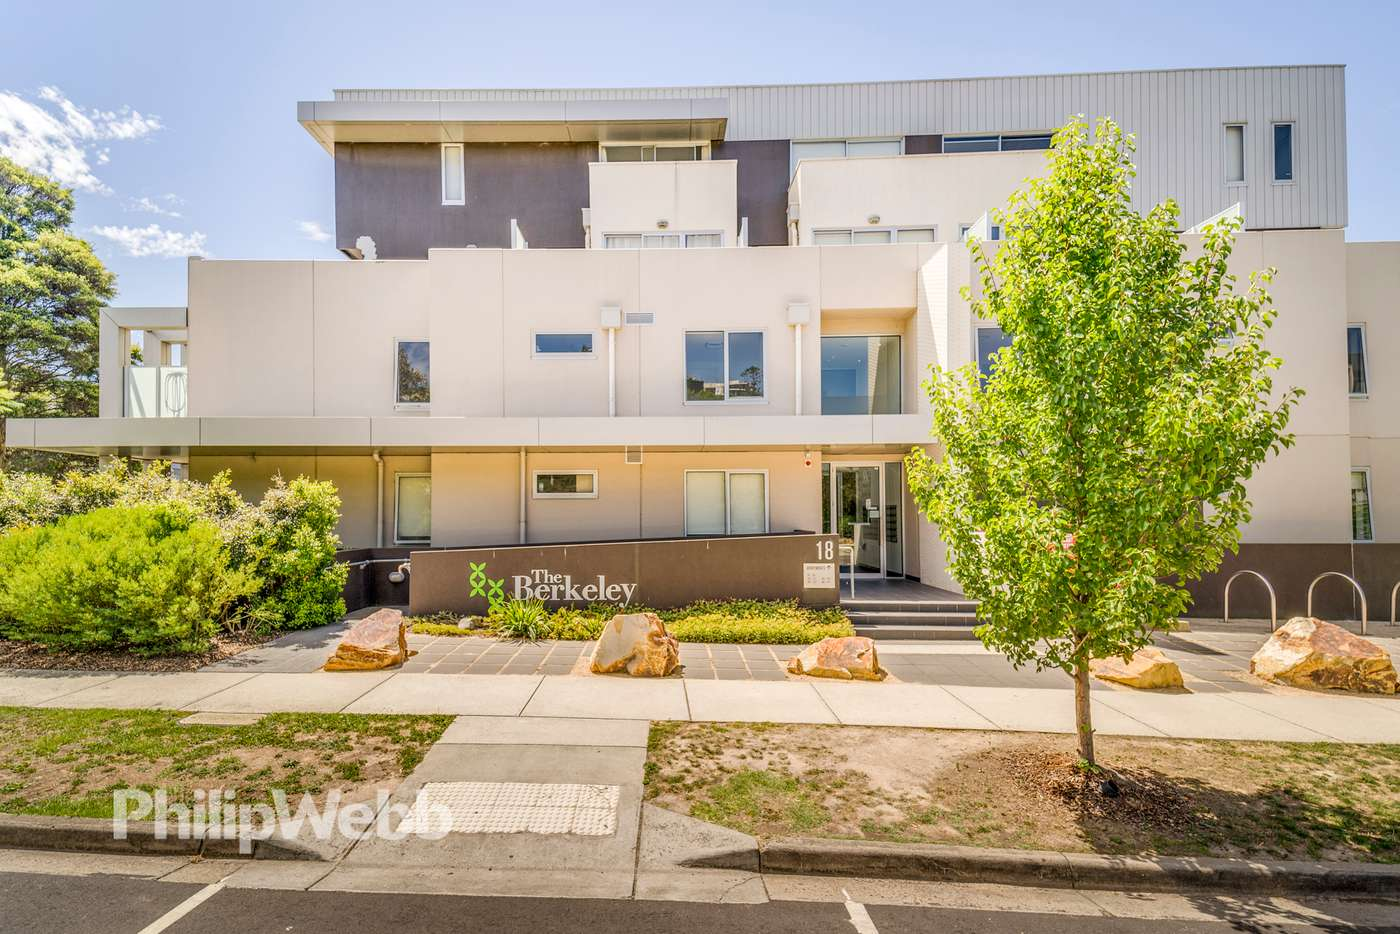 Main view of Homely apartment listing, 103/18 Berkeley Street, Doncaster VIC 3108